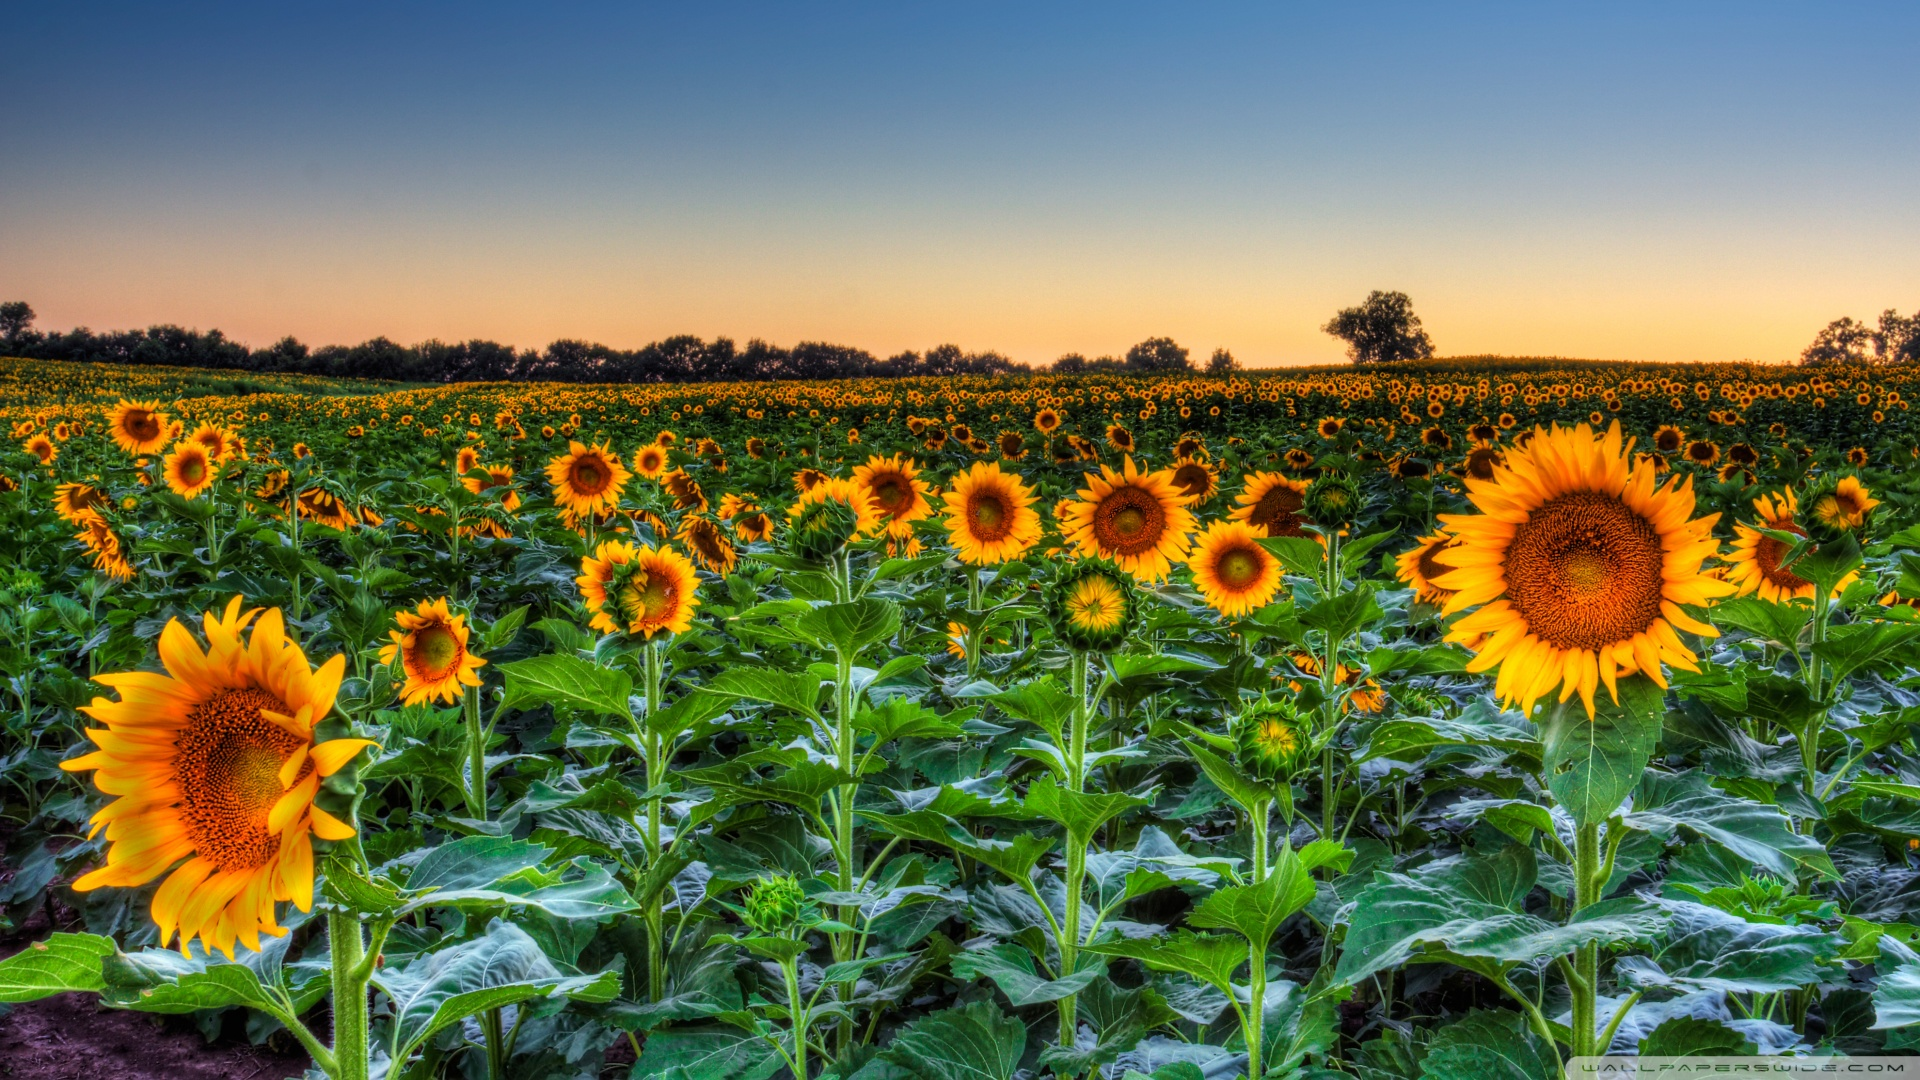 sunflower_field_sunset-wallpaper-1920x1080